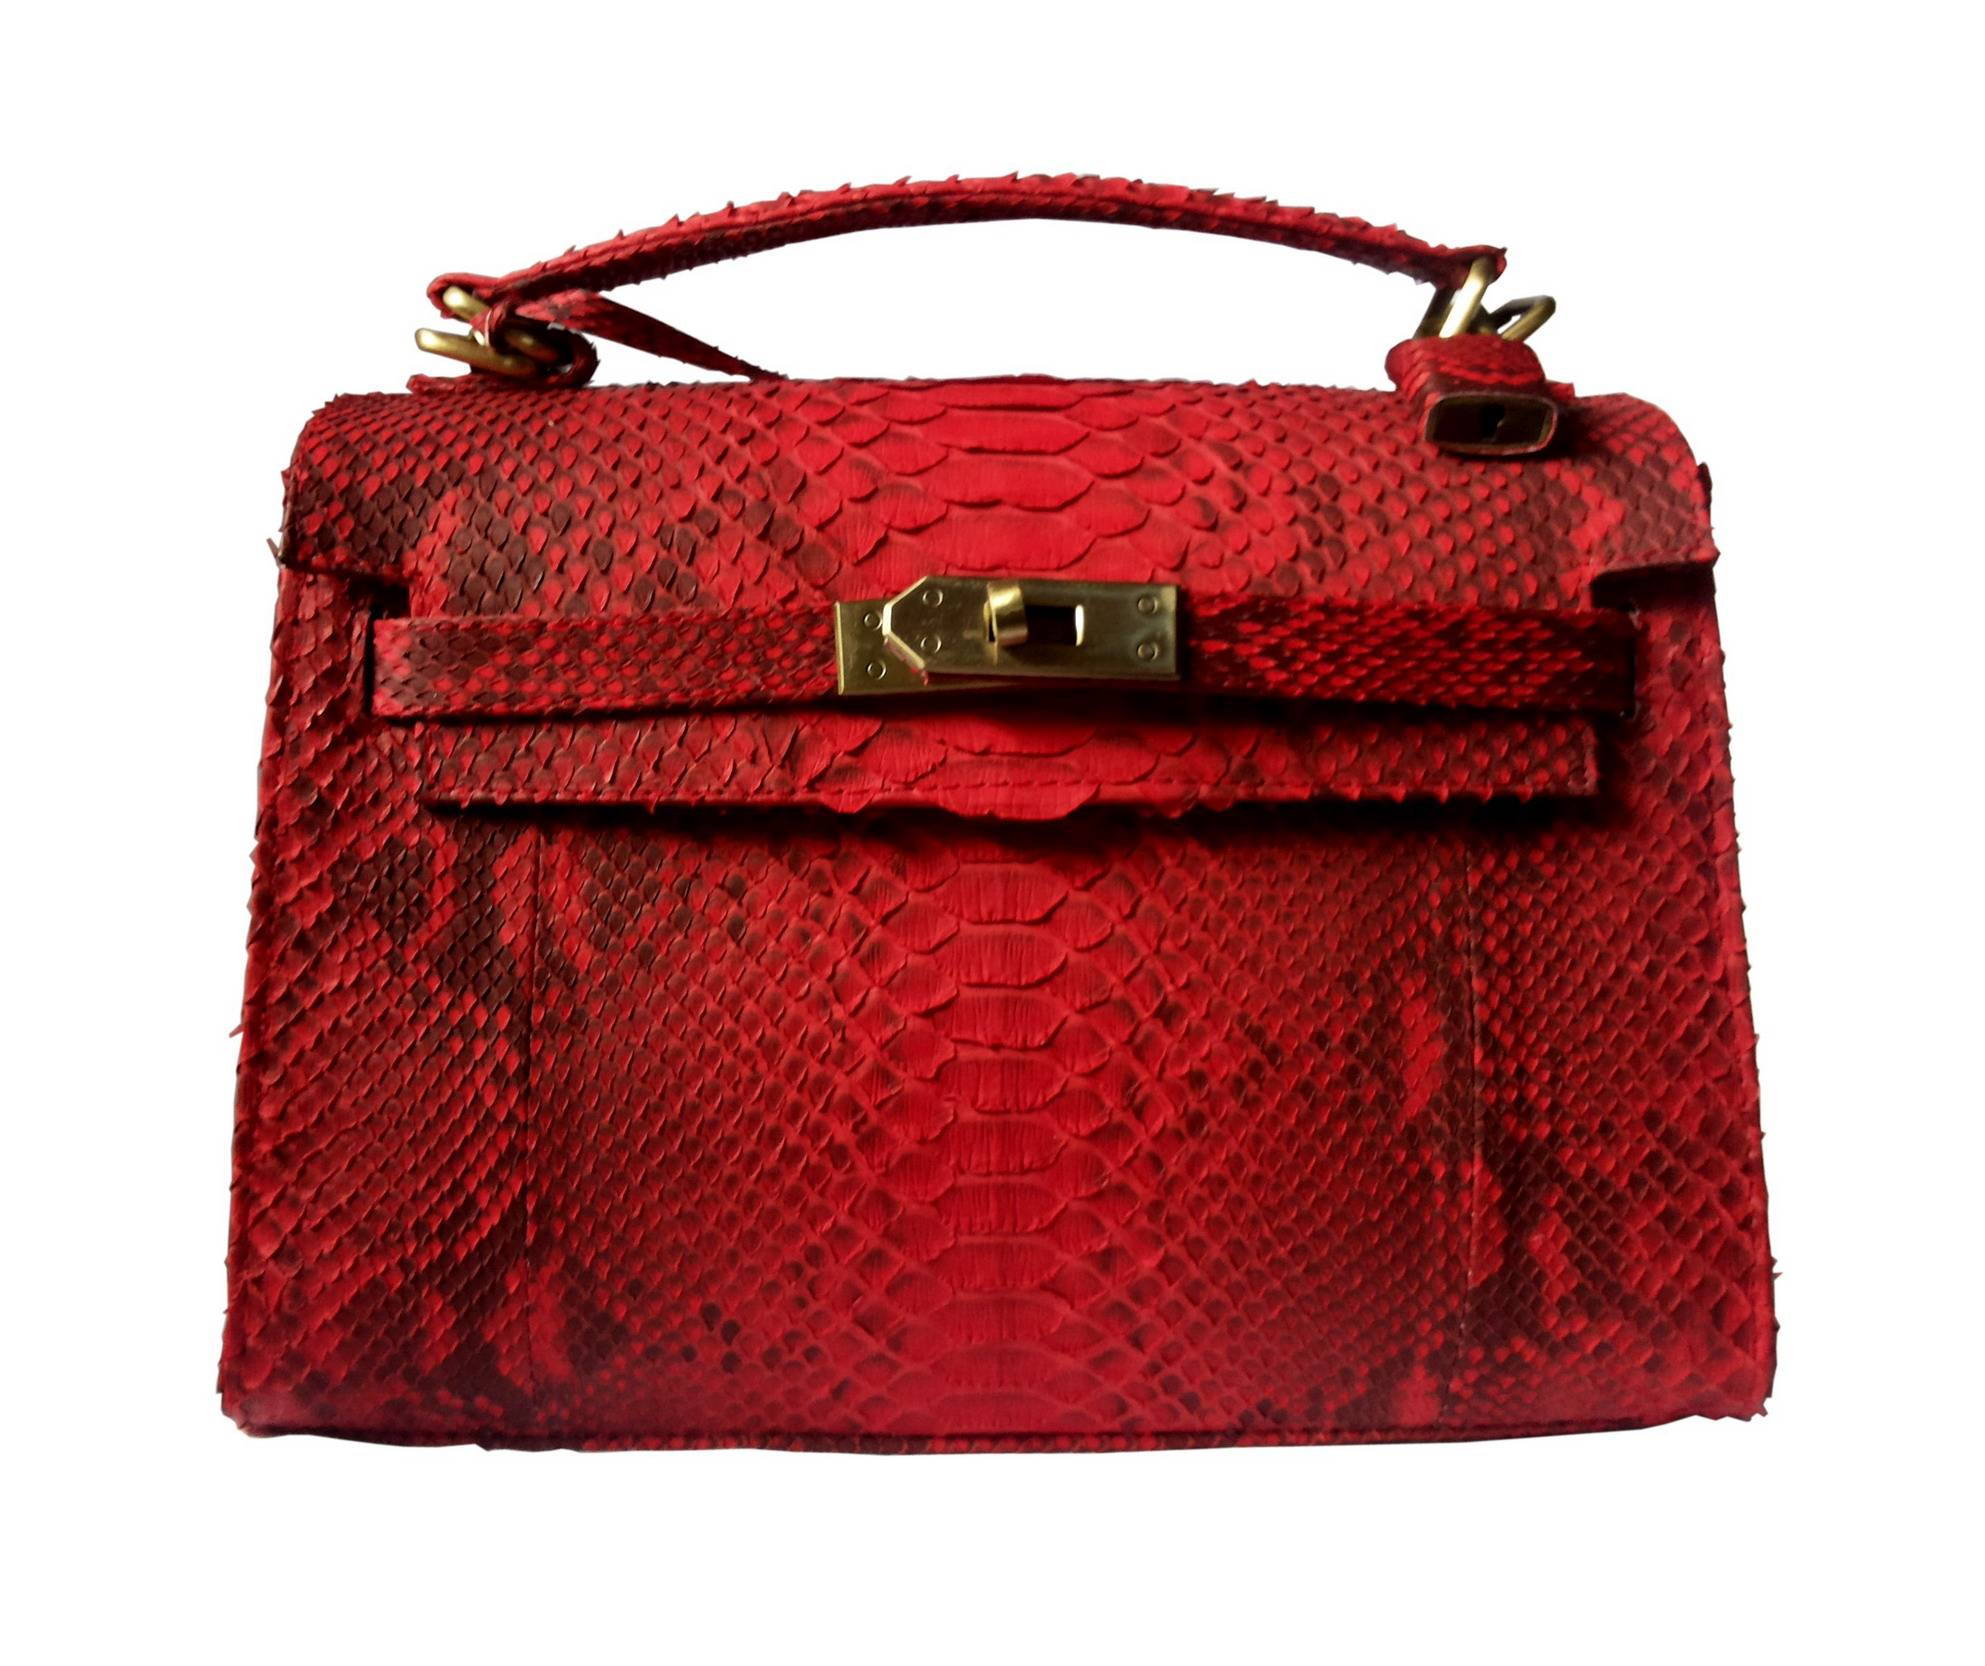 Genuine Snakeskin Leather Handbag,